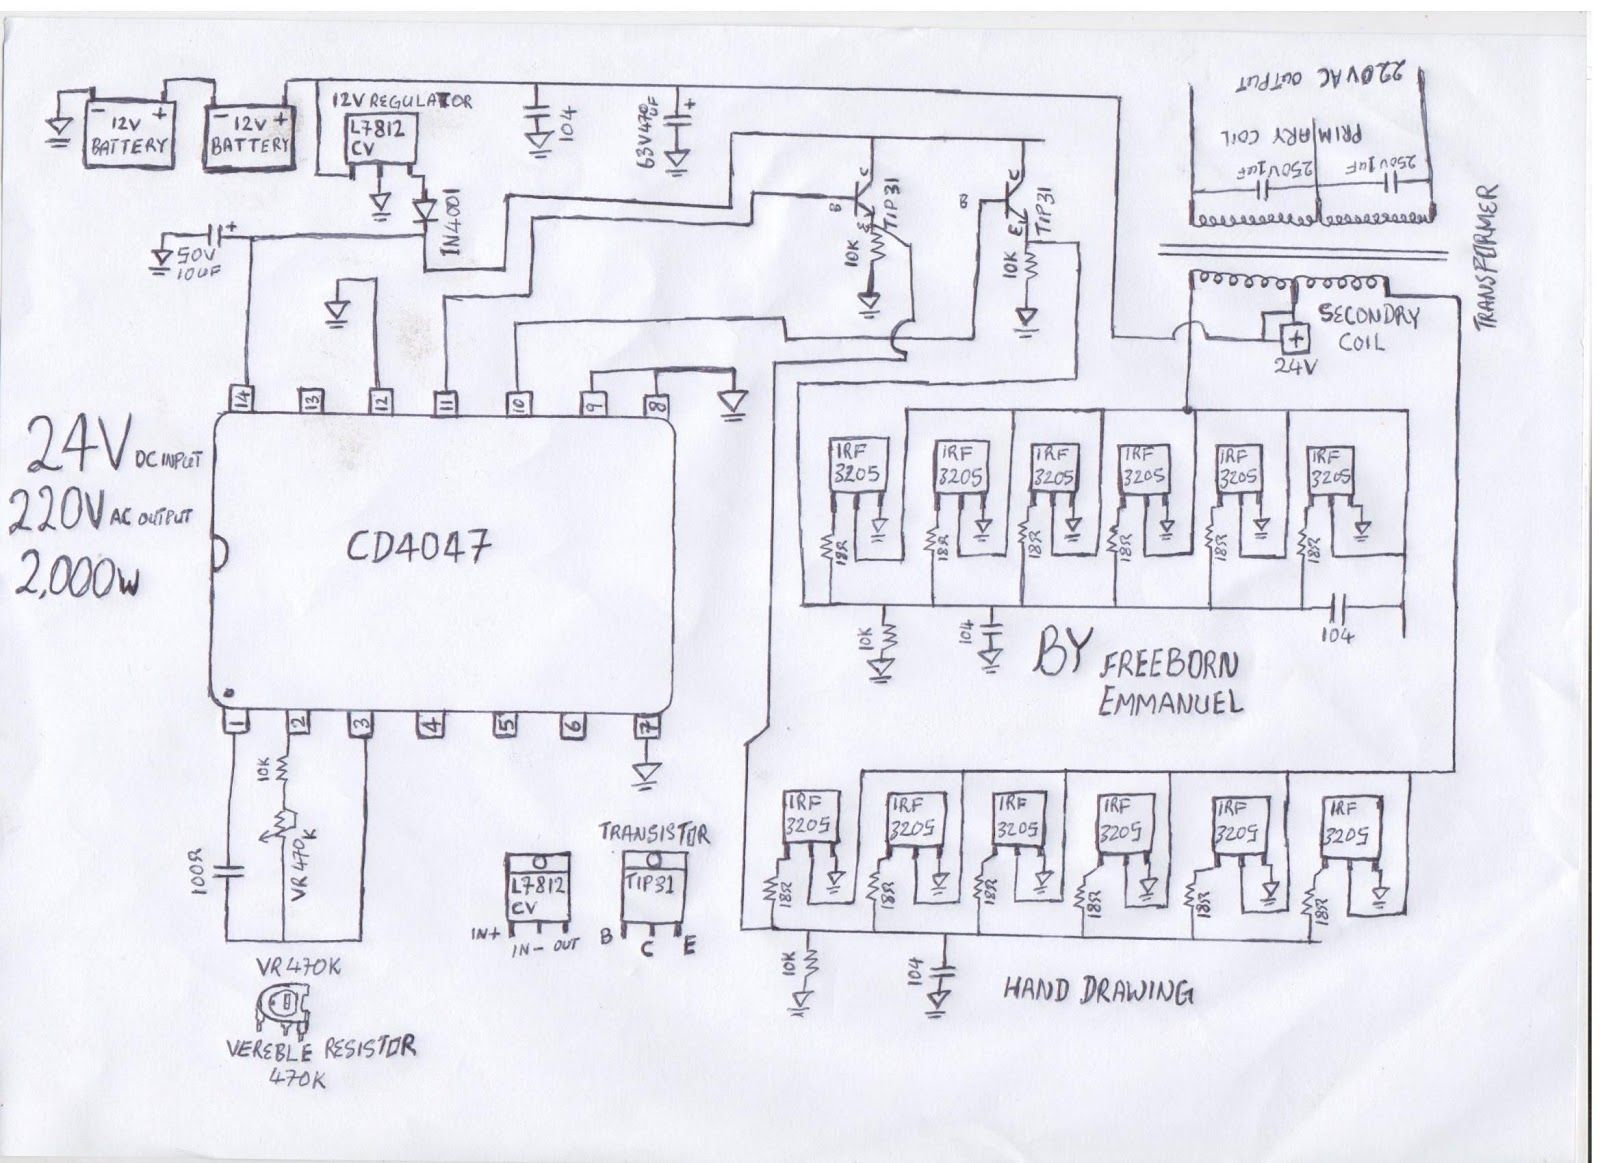 Pin By Parthib Banerjee On Circuit Diagram Pinterest 200m Fm Transmitter Electronic Circuits And Diagramelectronics Dc Electrical Wiring Engineering Solar Inverter Electronics